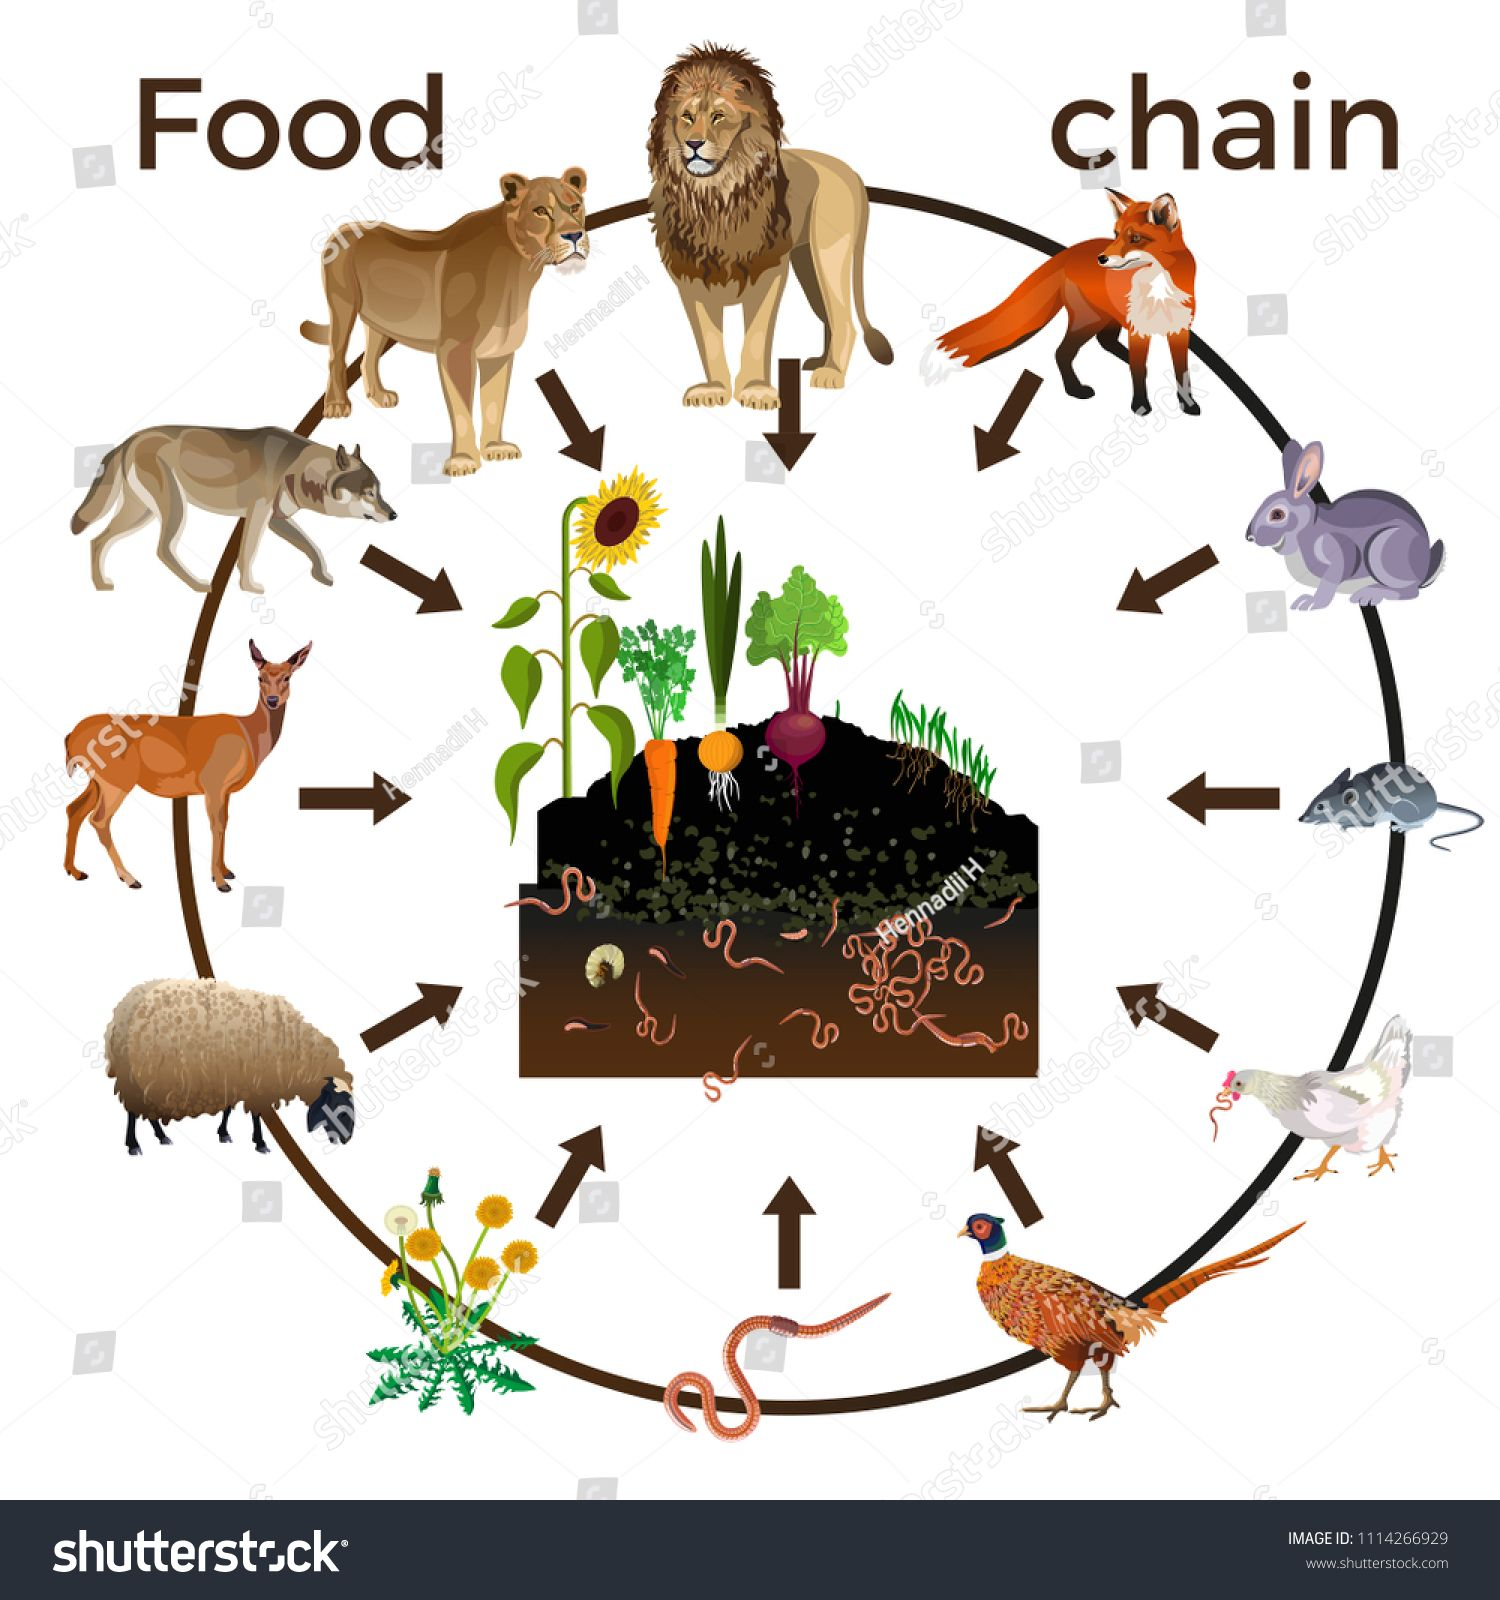 It can grow up to 2 1/2 feet long, 15 to 16 inches tall at the. 16 Animal Food Chain